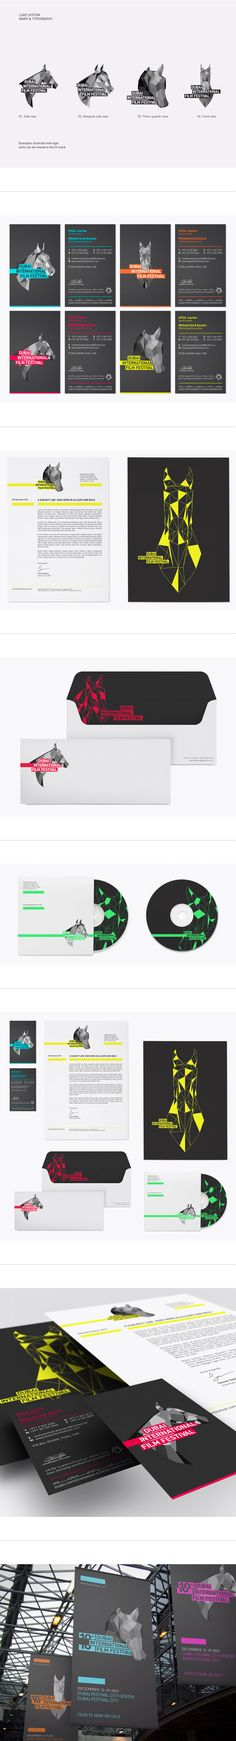 Dubai Film Festival Rebrand Pitch by Ryan Atkinson, via Behance